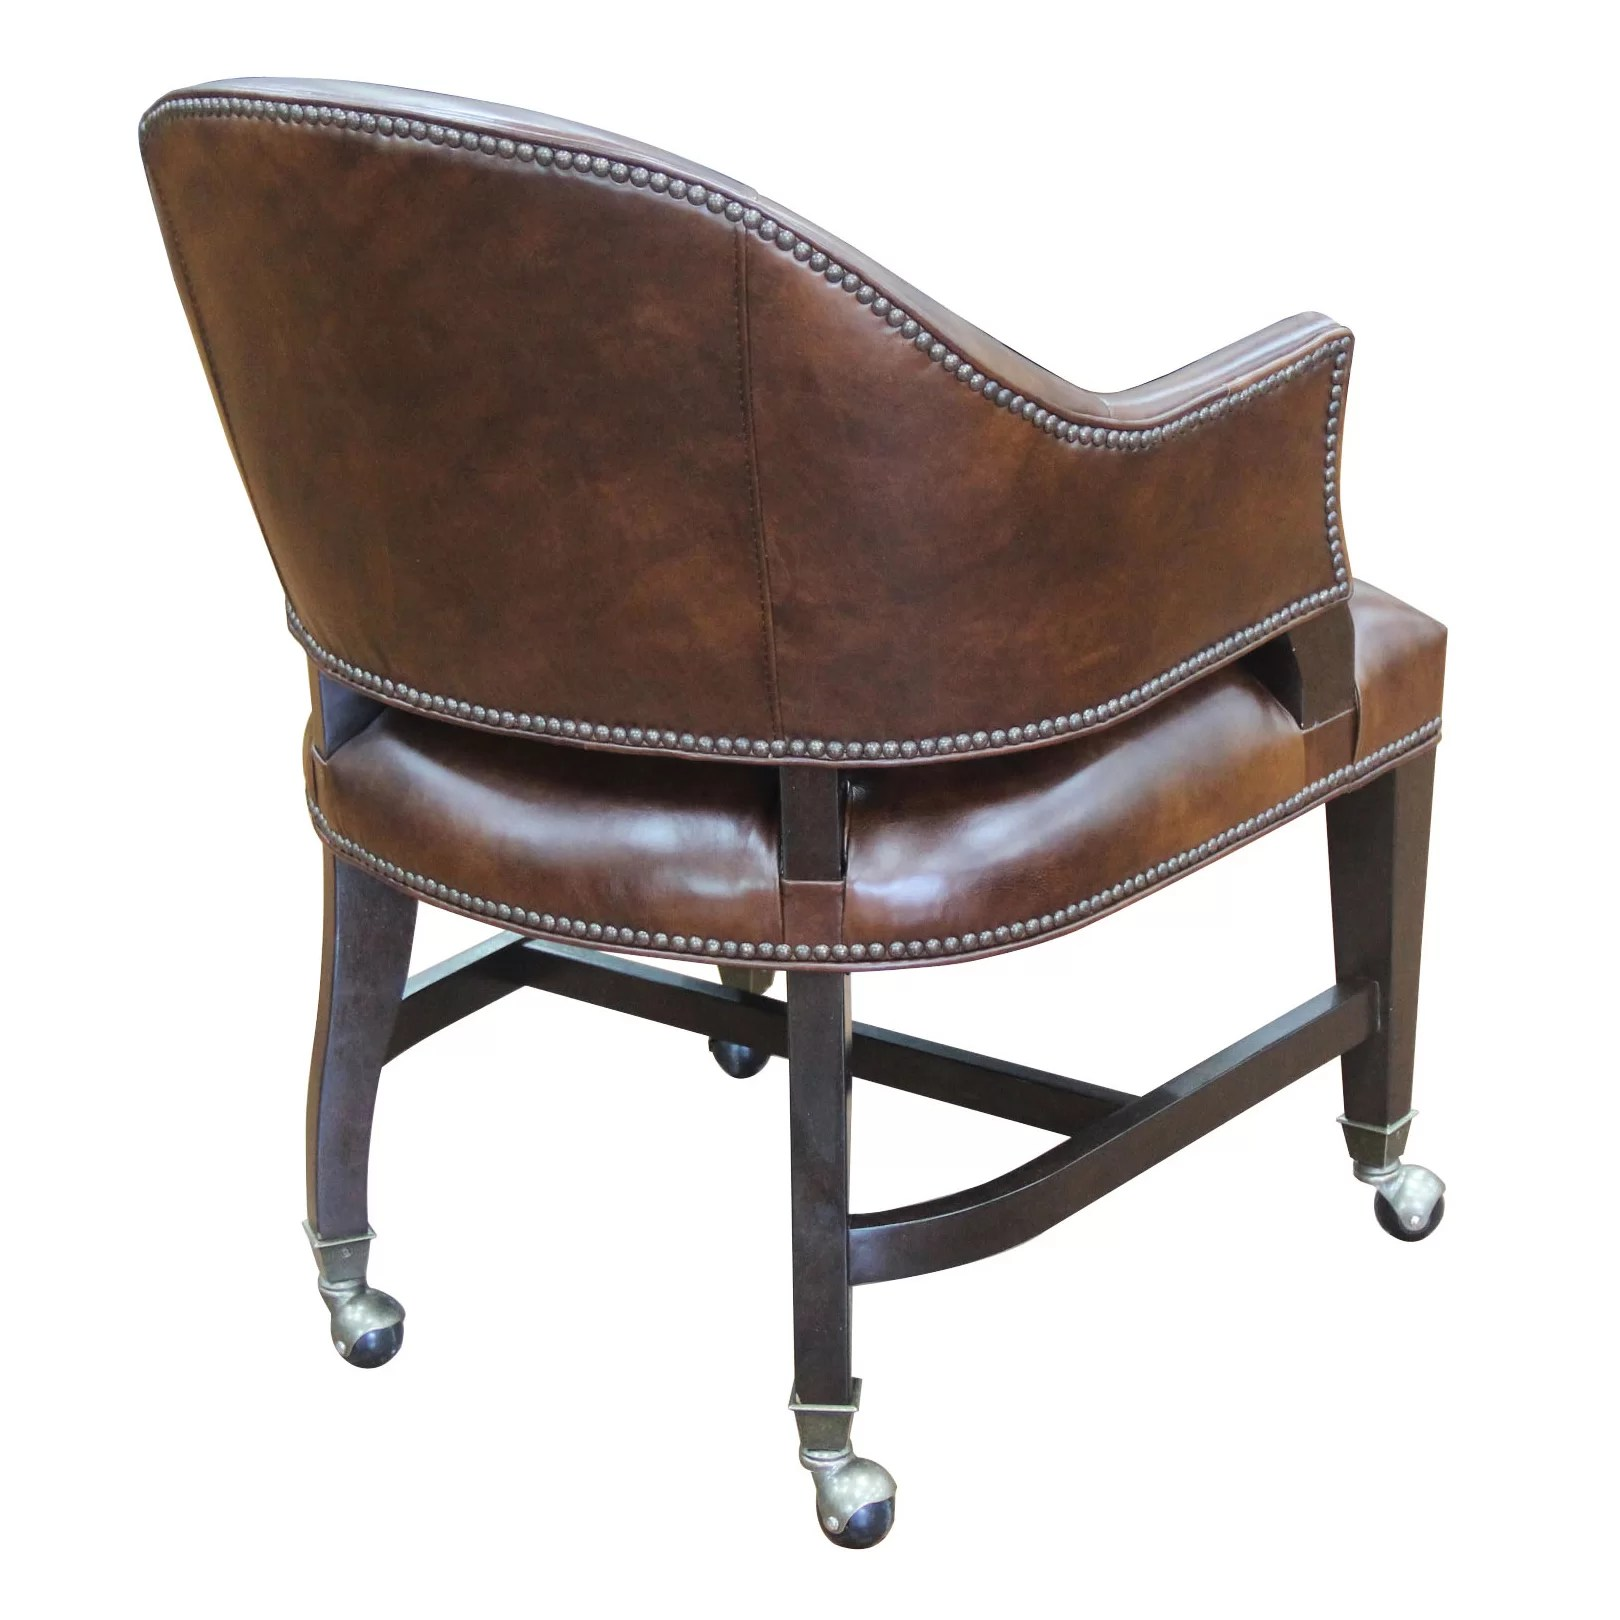 Hooker Leather Chair Hooker Furniture Isadora Leather Desk Chair Wayfair